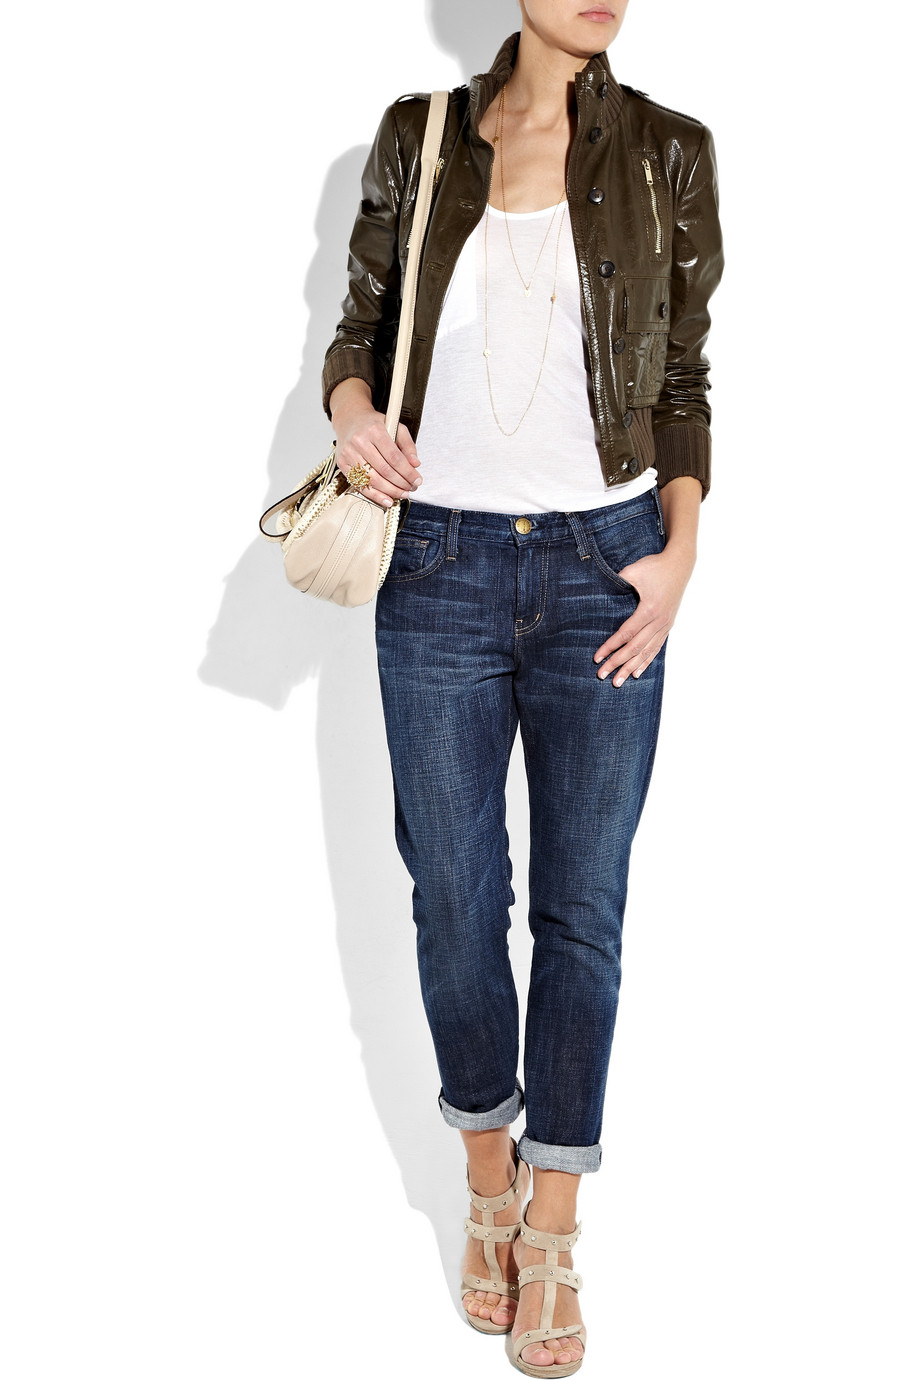 Wearable Trends: Gucci Leather Bomber Jacket